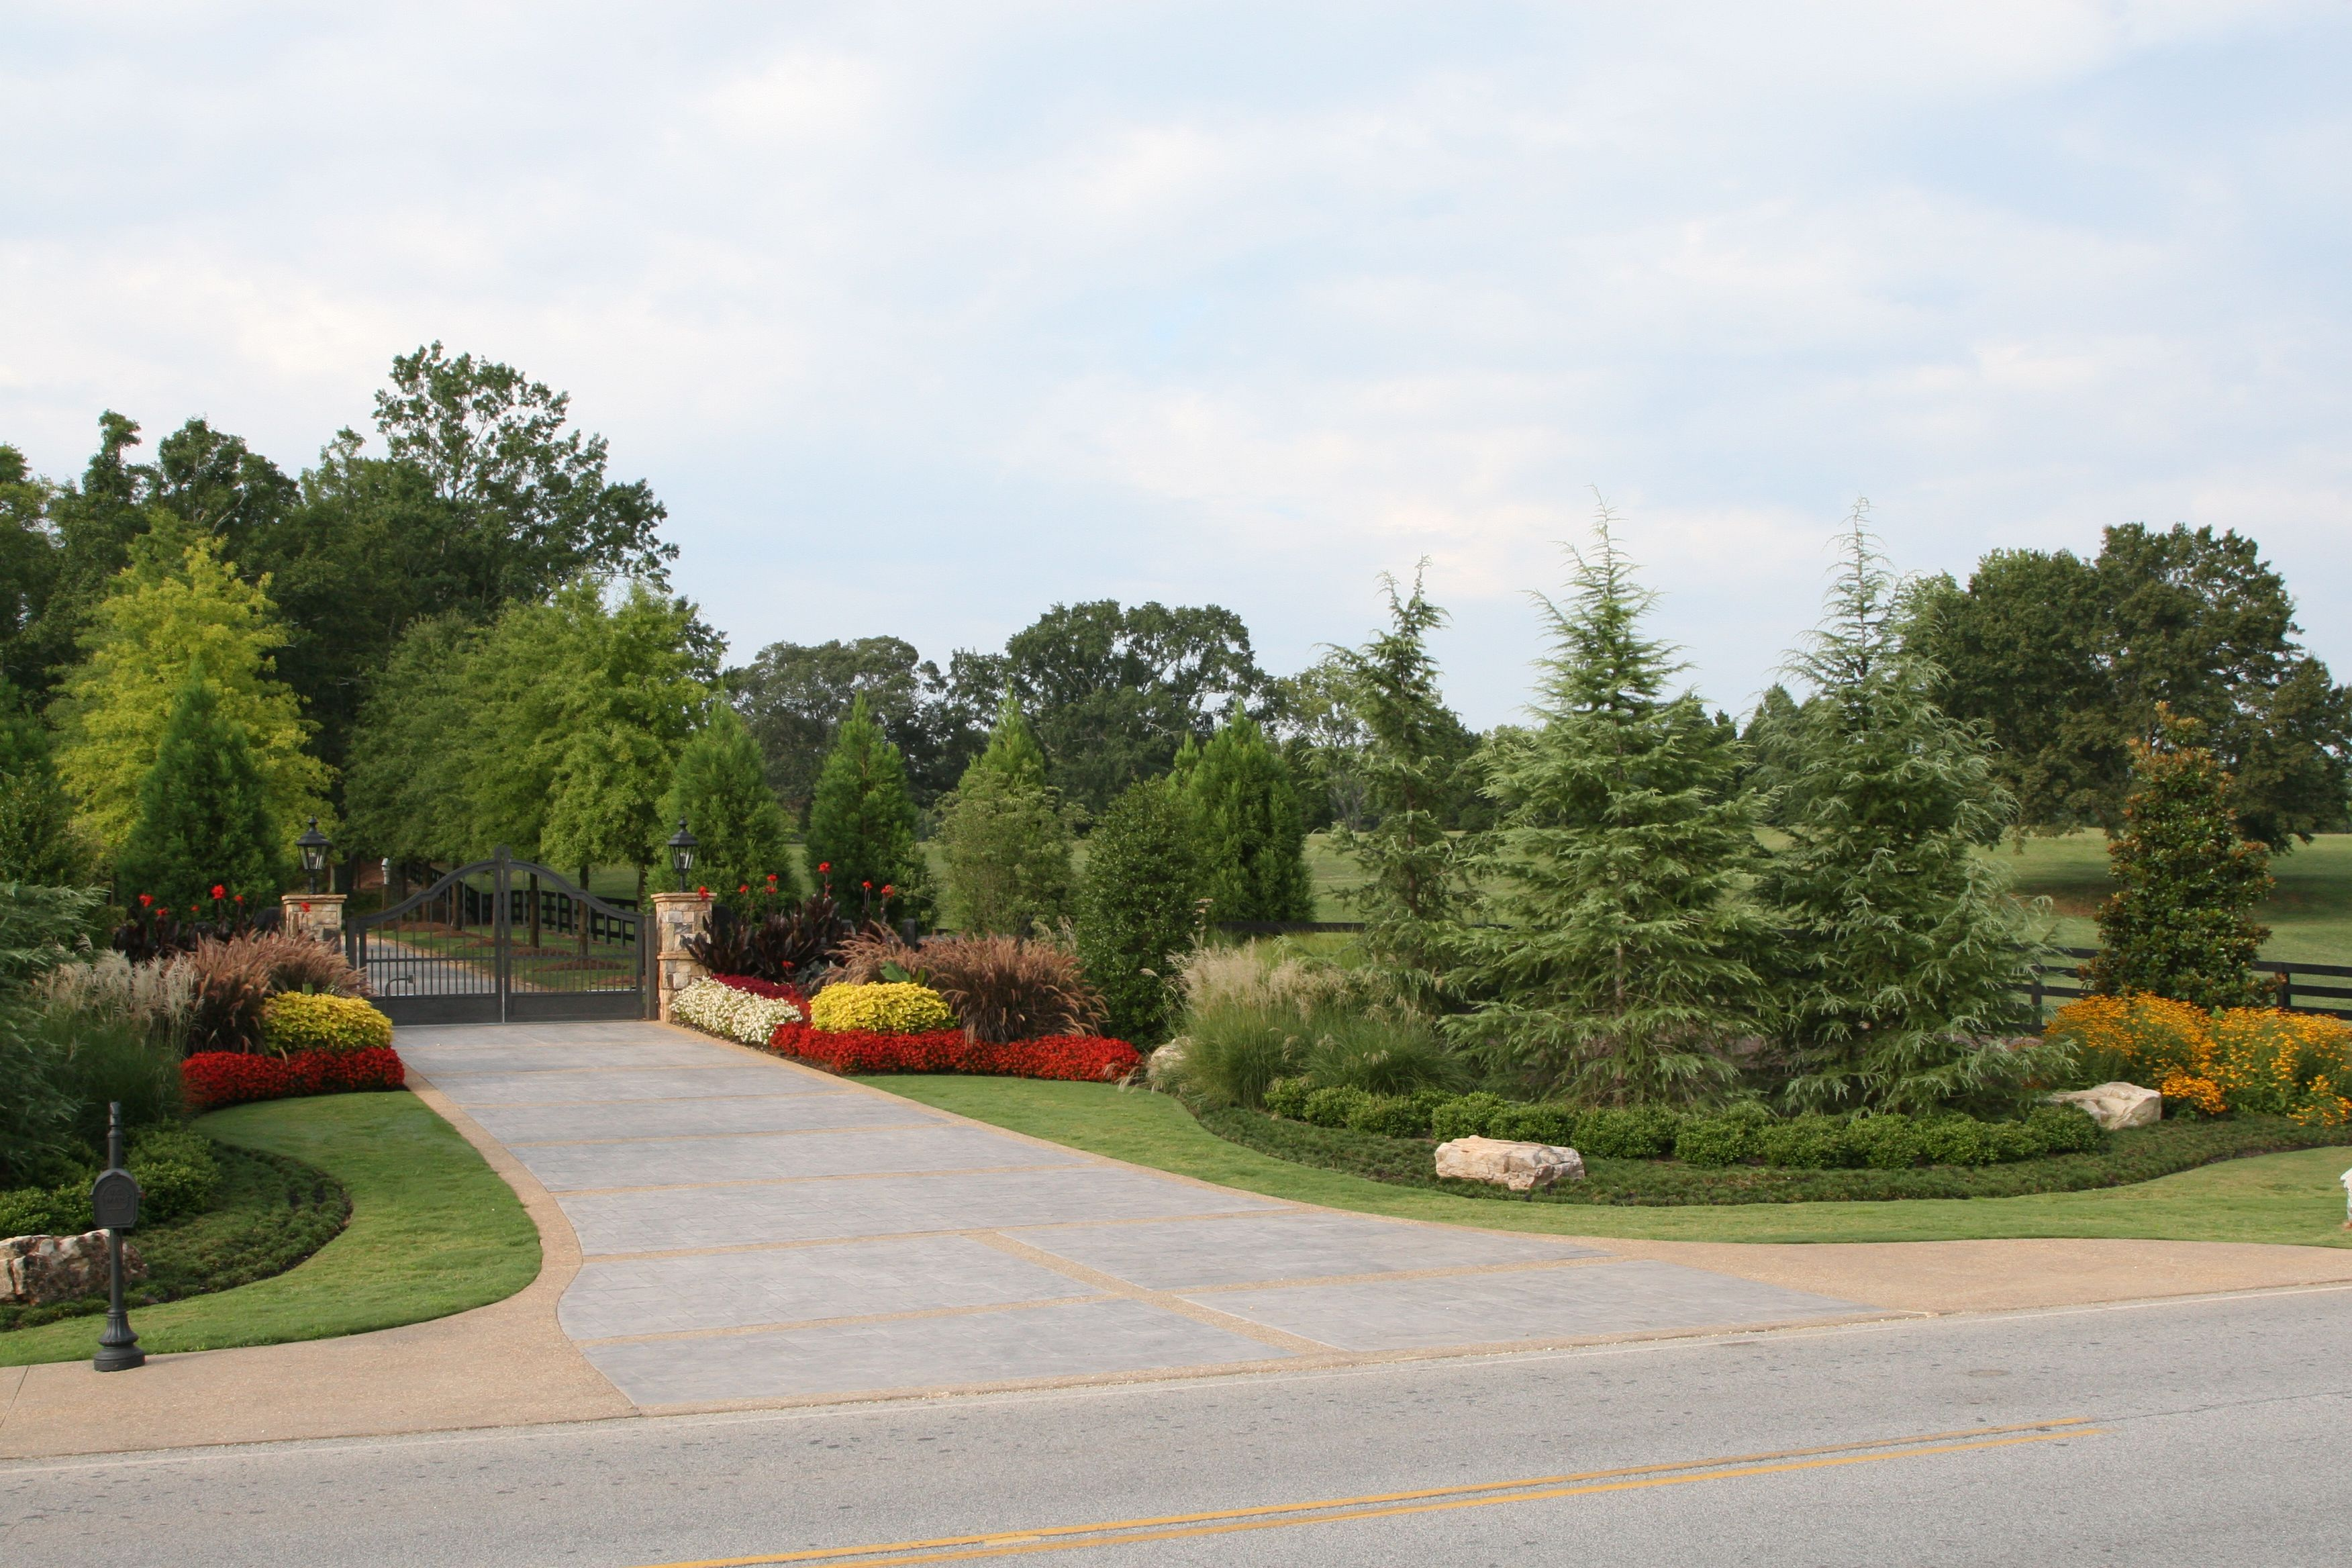 Driveway entrance landscaping ideas driveway entrance for Garden entrance designs